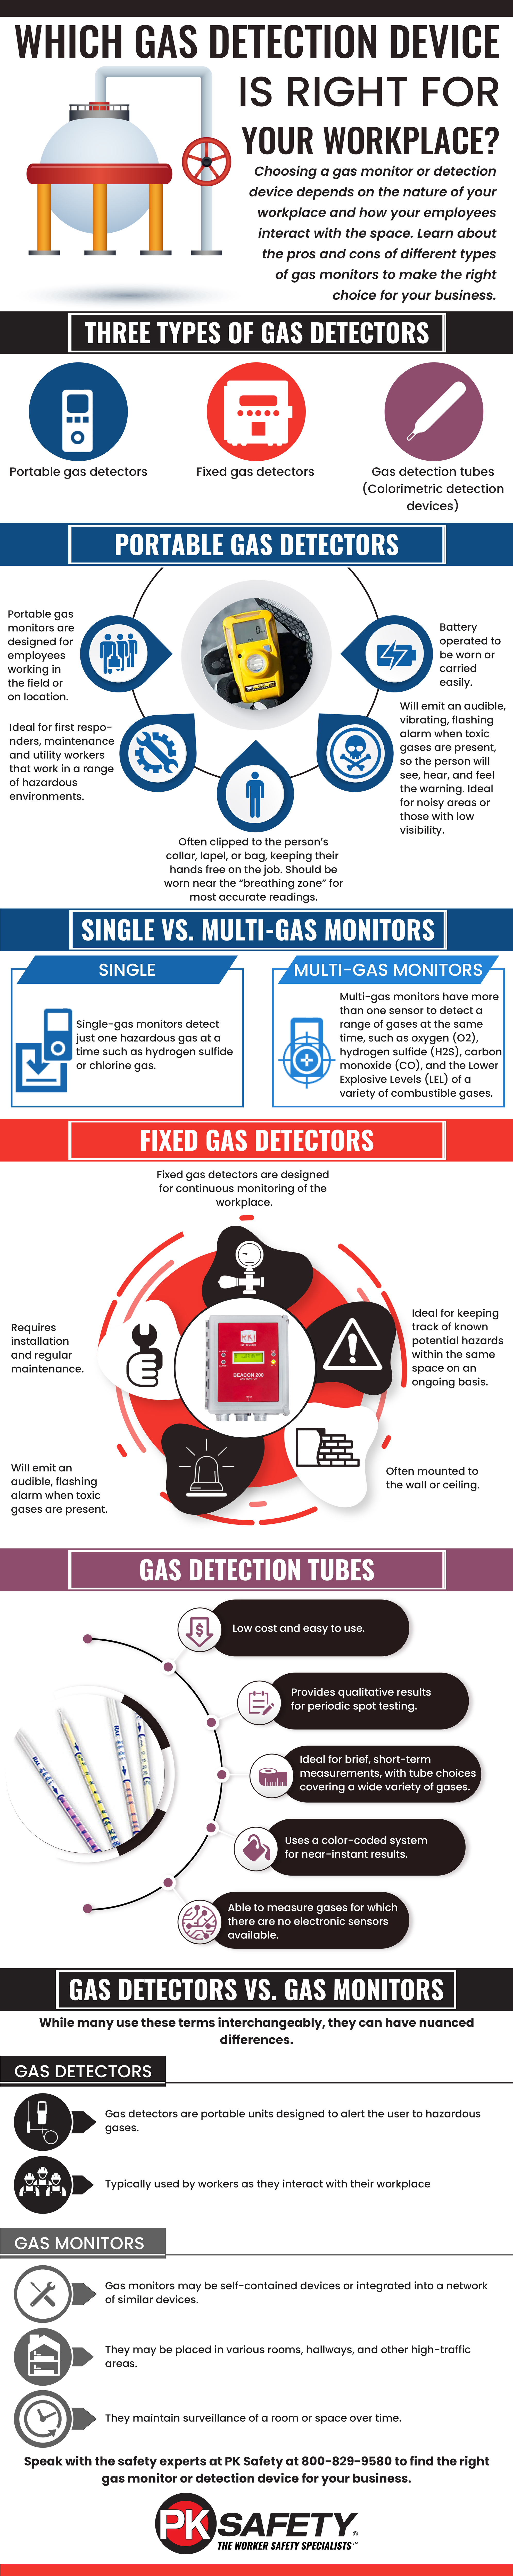 Which Gas Detection Device is Right for Your Workplace? #infographic #Offbeat #Workplace #Safety #Detection Devices